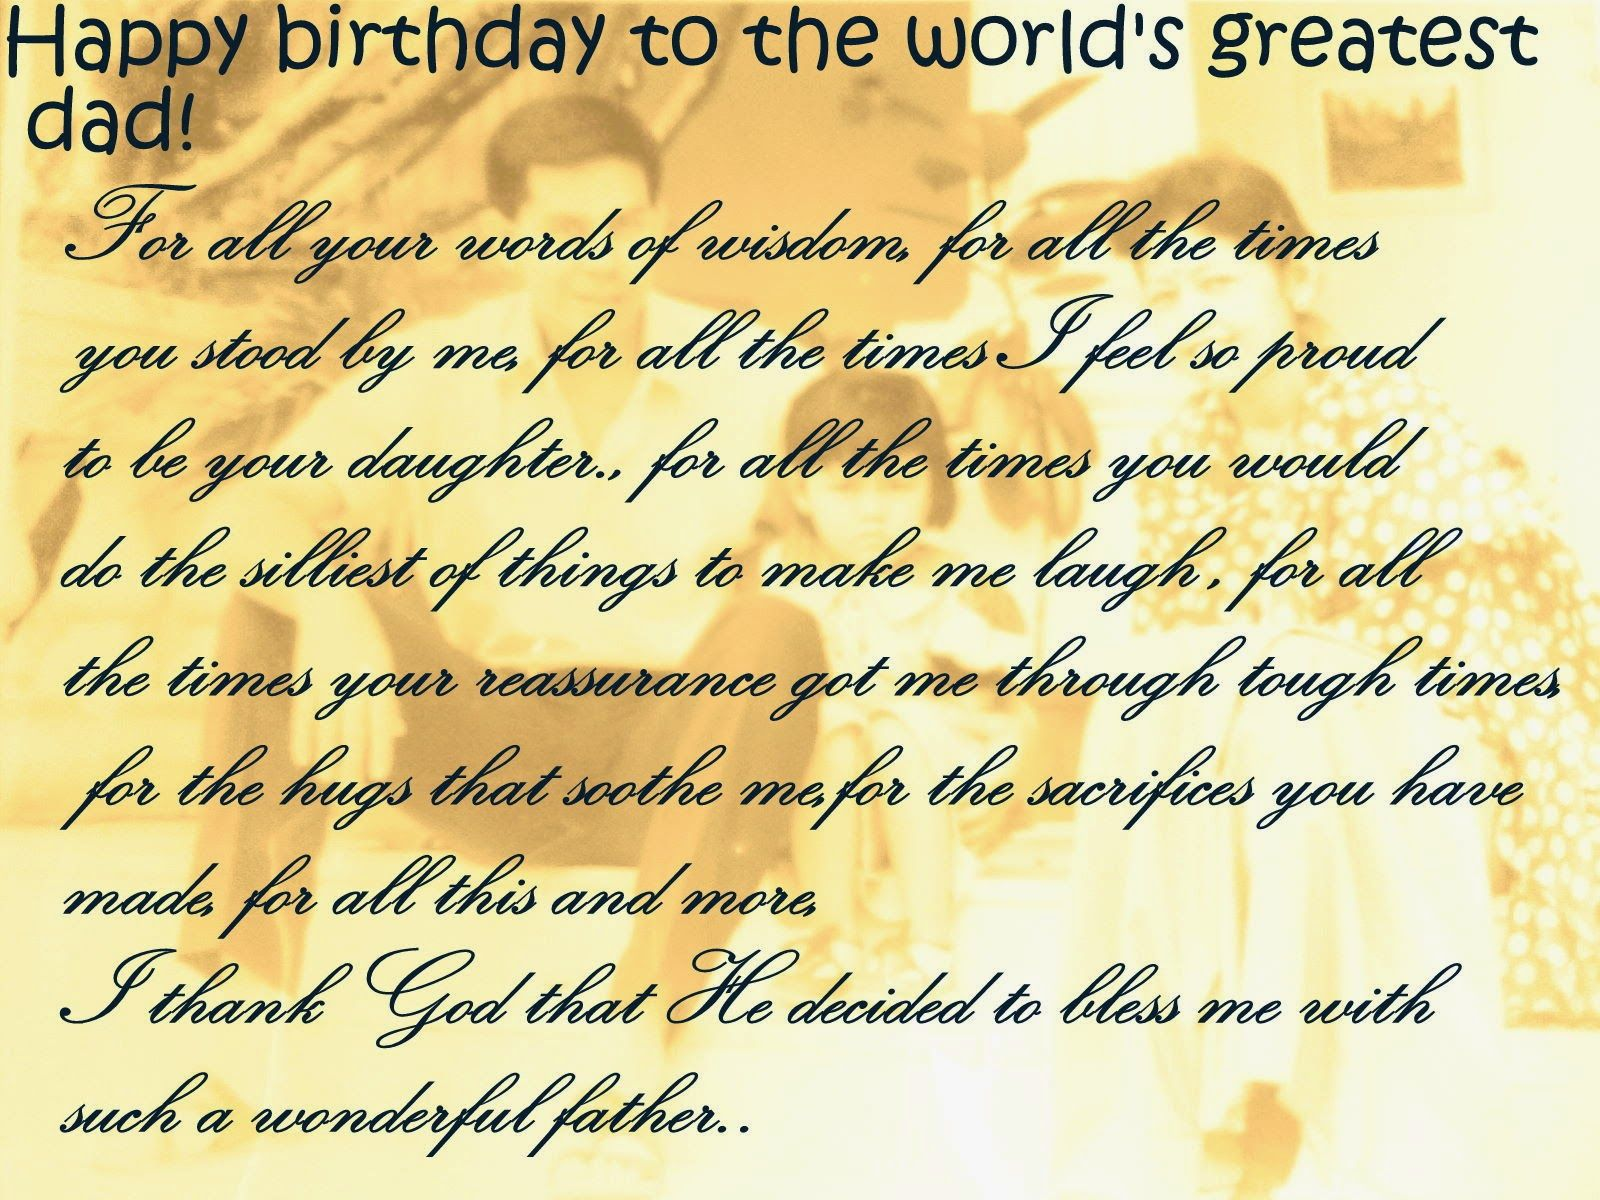 Happy Birthday Dad Quotes For Facebook New World Of Fun Happy